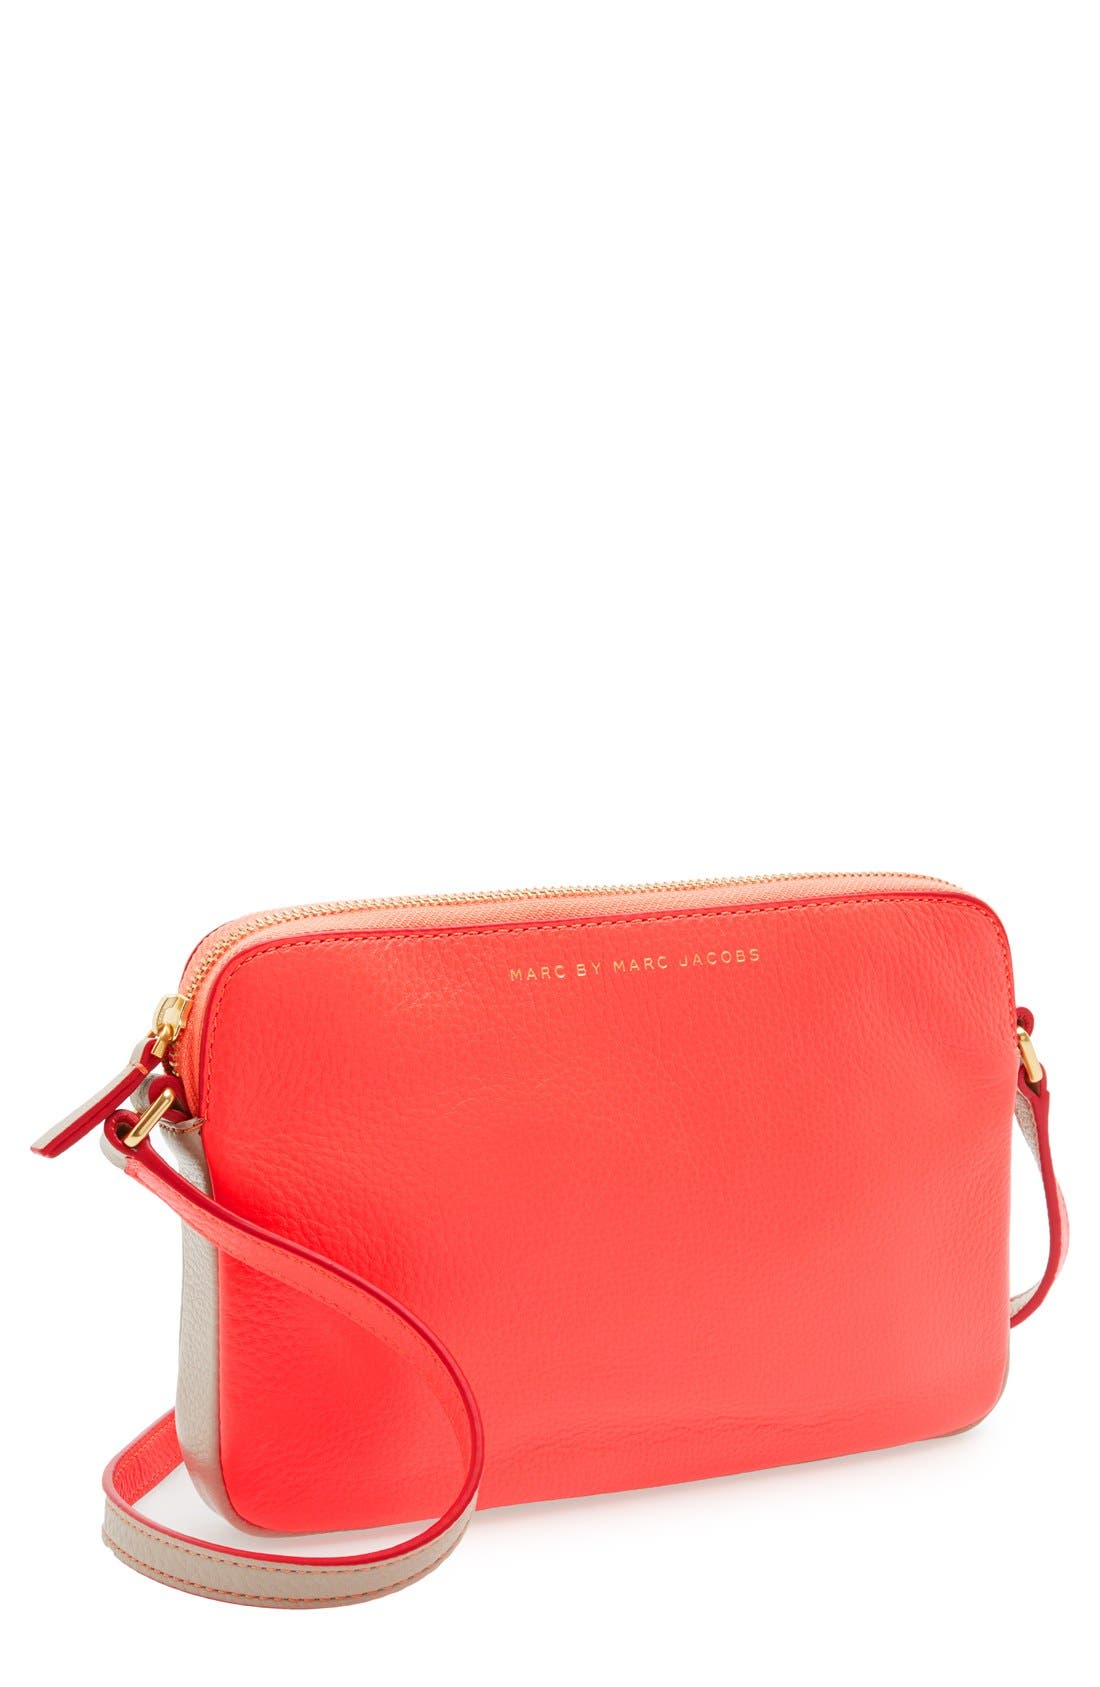 Alternate Image 1 Selected - MARC BY MARC JACOBS 'Sophisticato - Dani' Leather Crossbody Bag